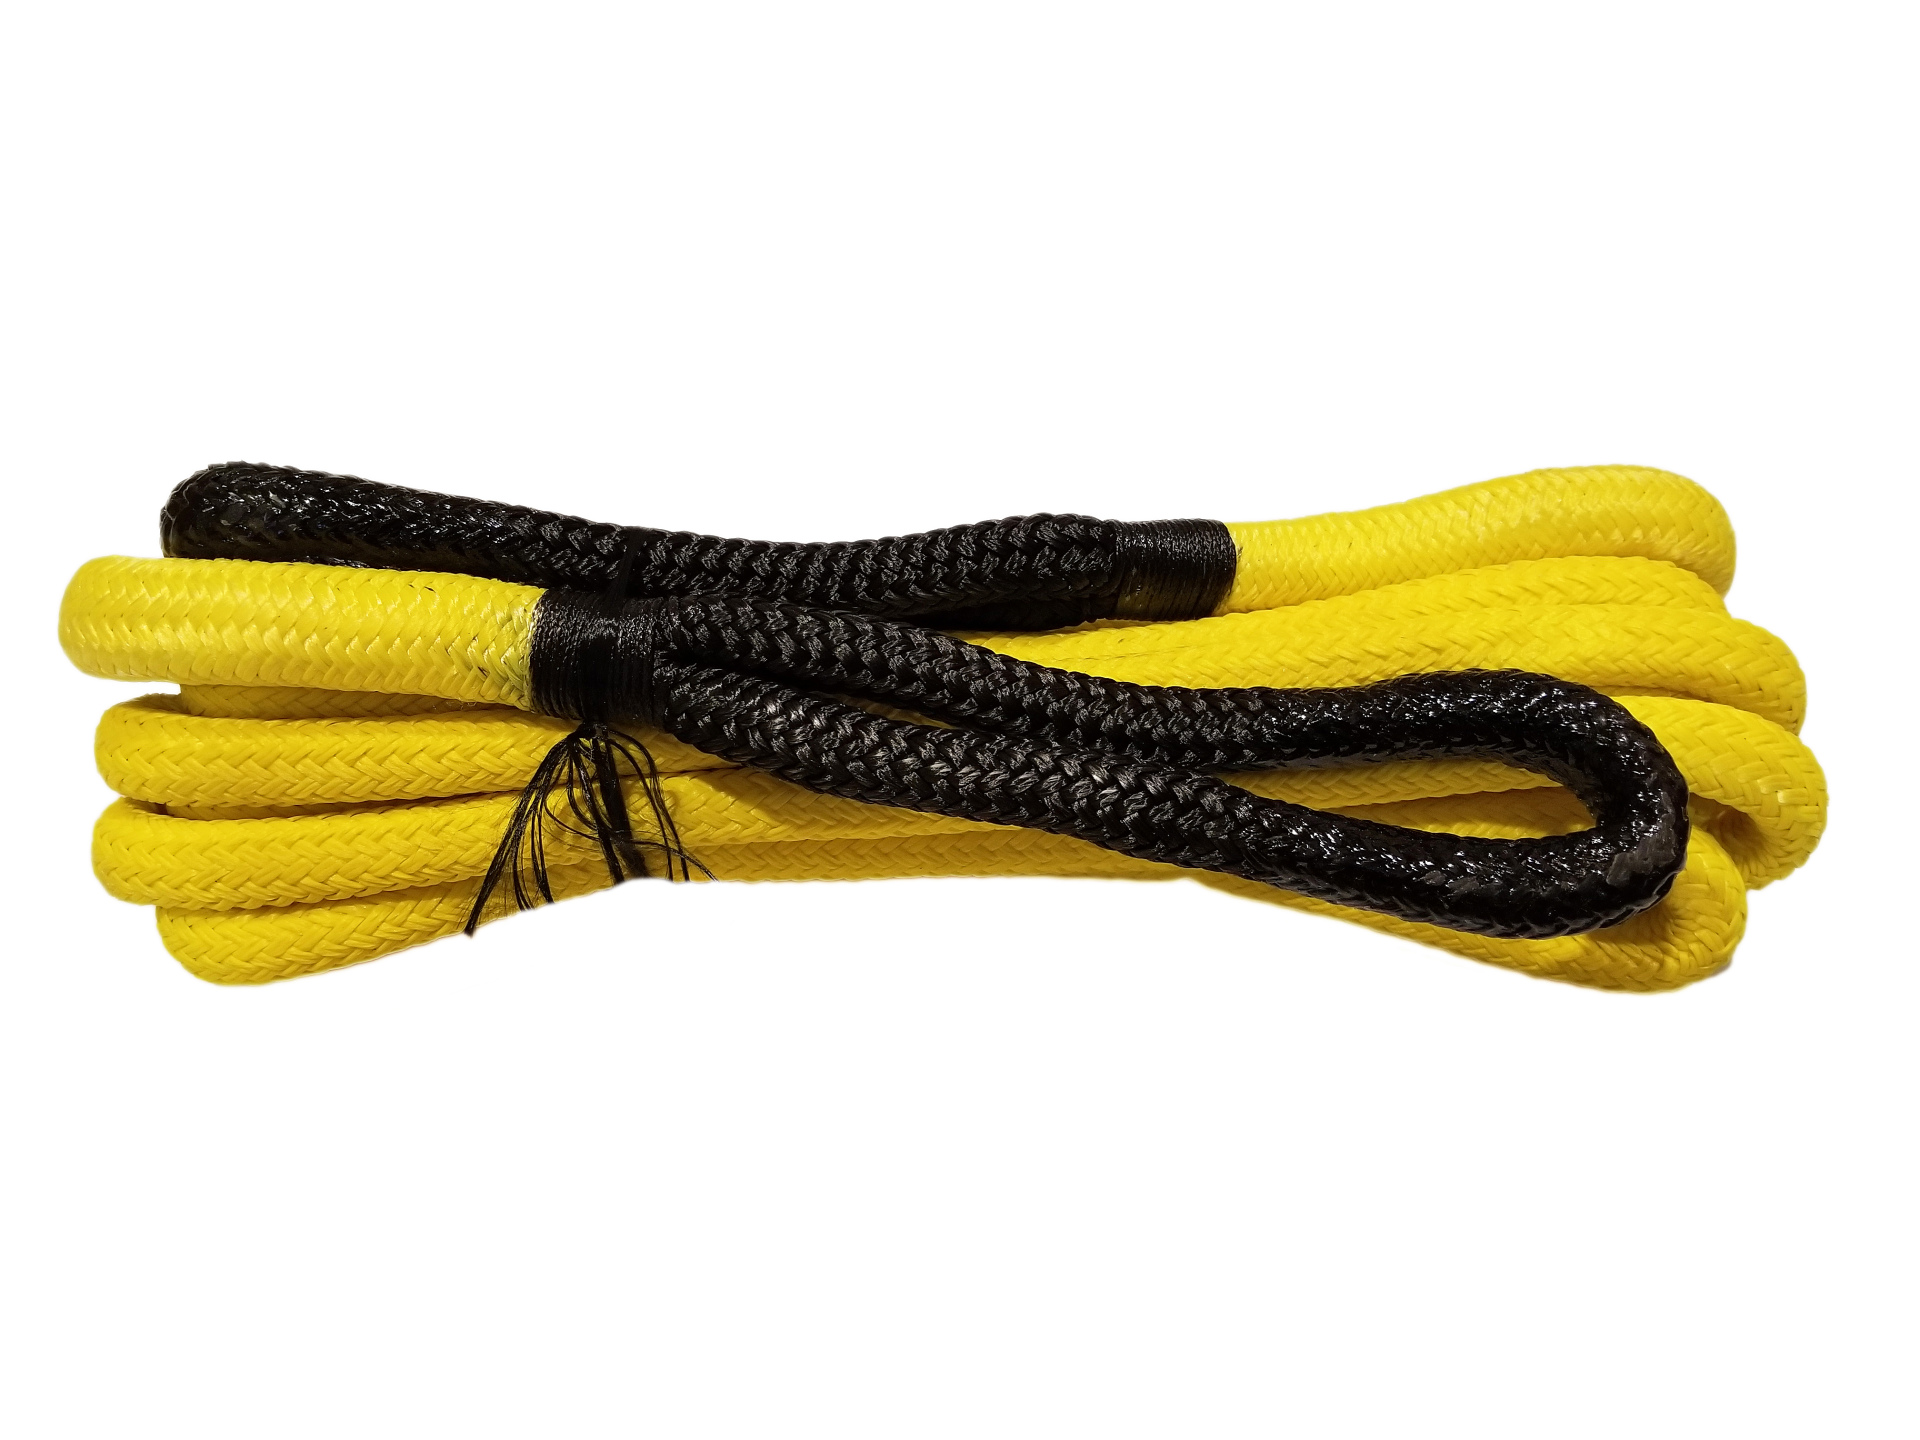 3/4 X 20 Kinetic Rope Yellow with Black